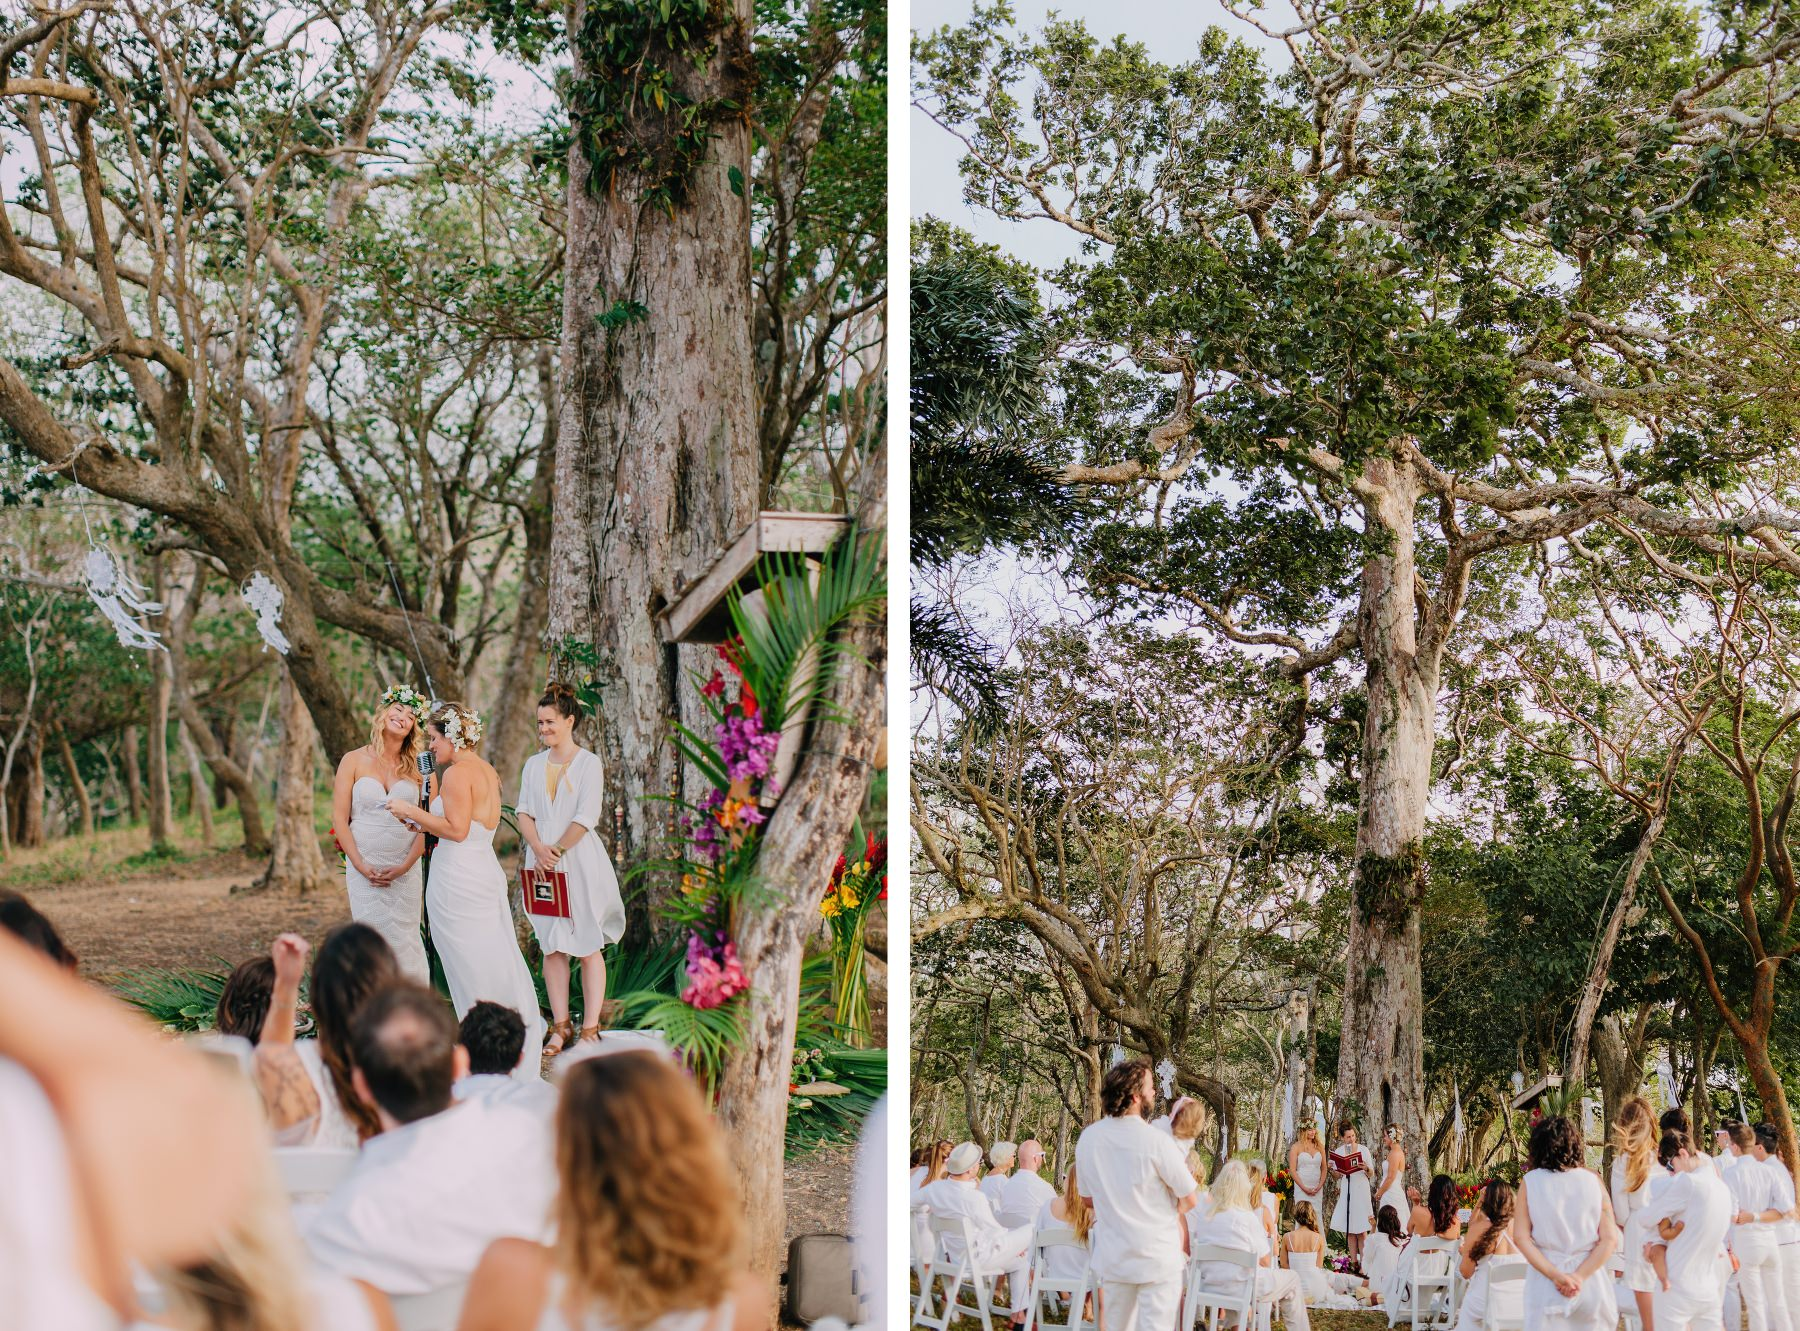 Boho Same-sex wedding under the tree. Wedding ideas - white colors